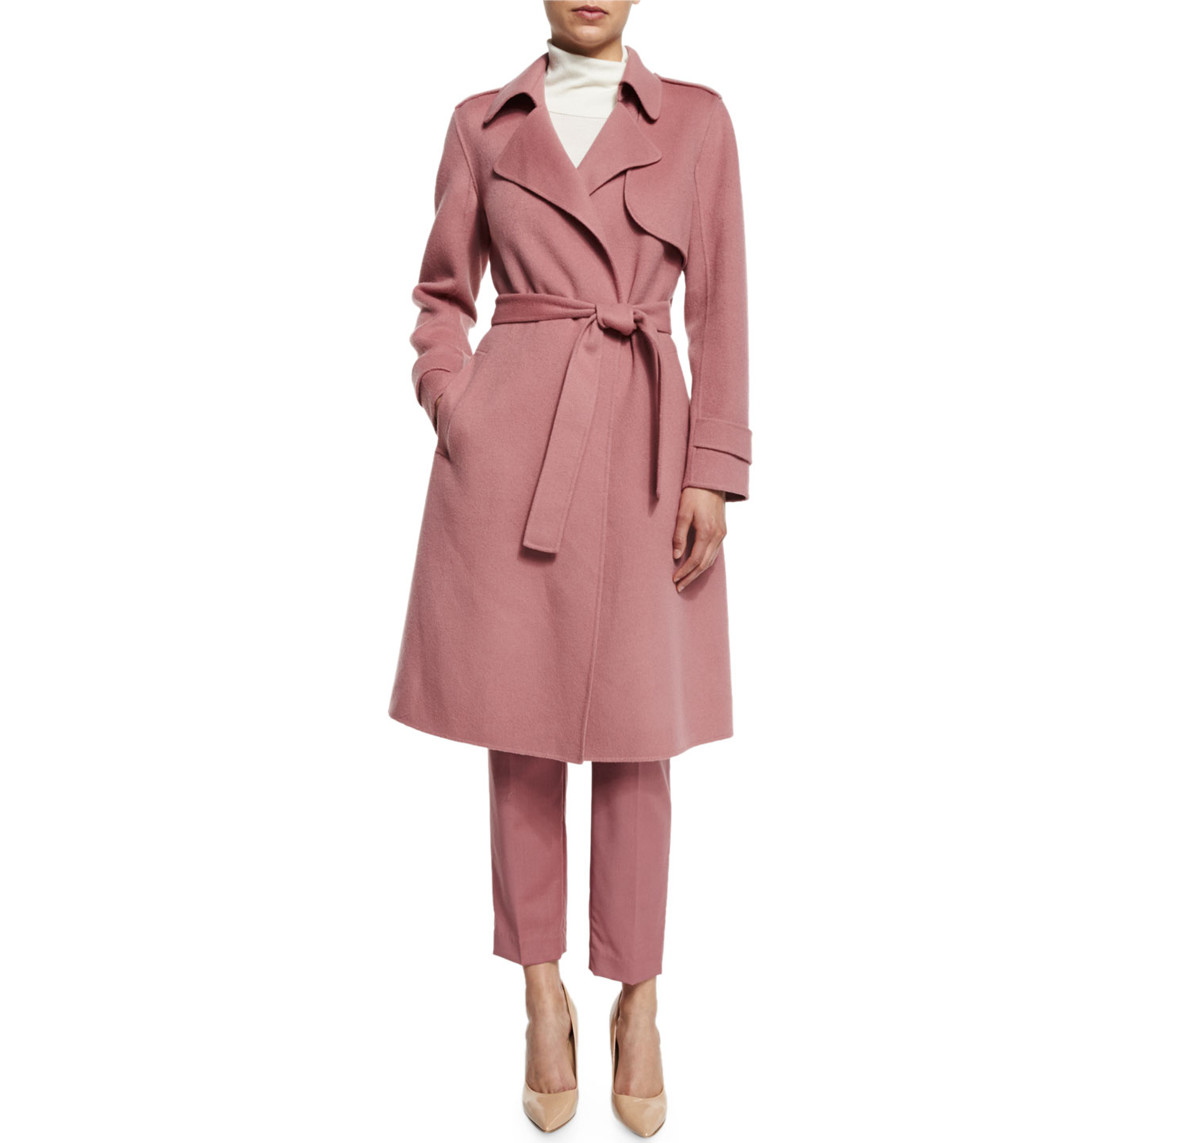 Theory Oaklane Trench coat in Pink Willow